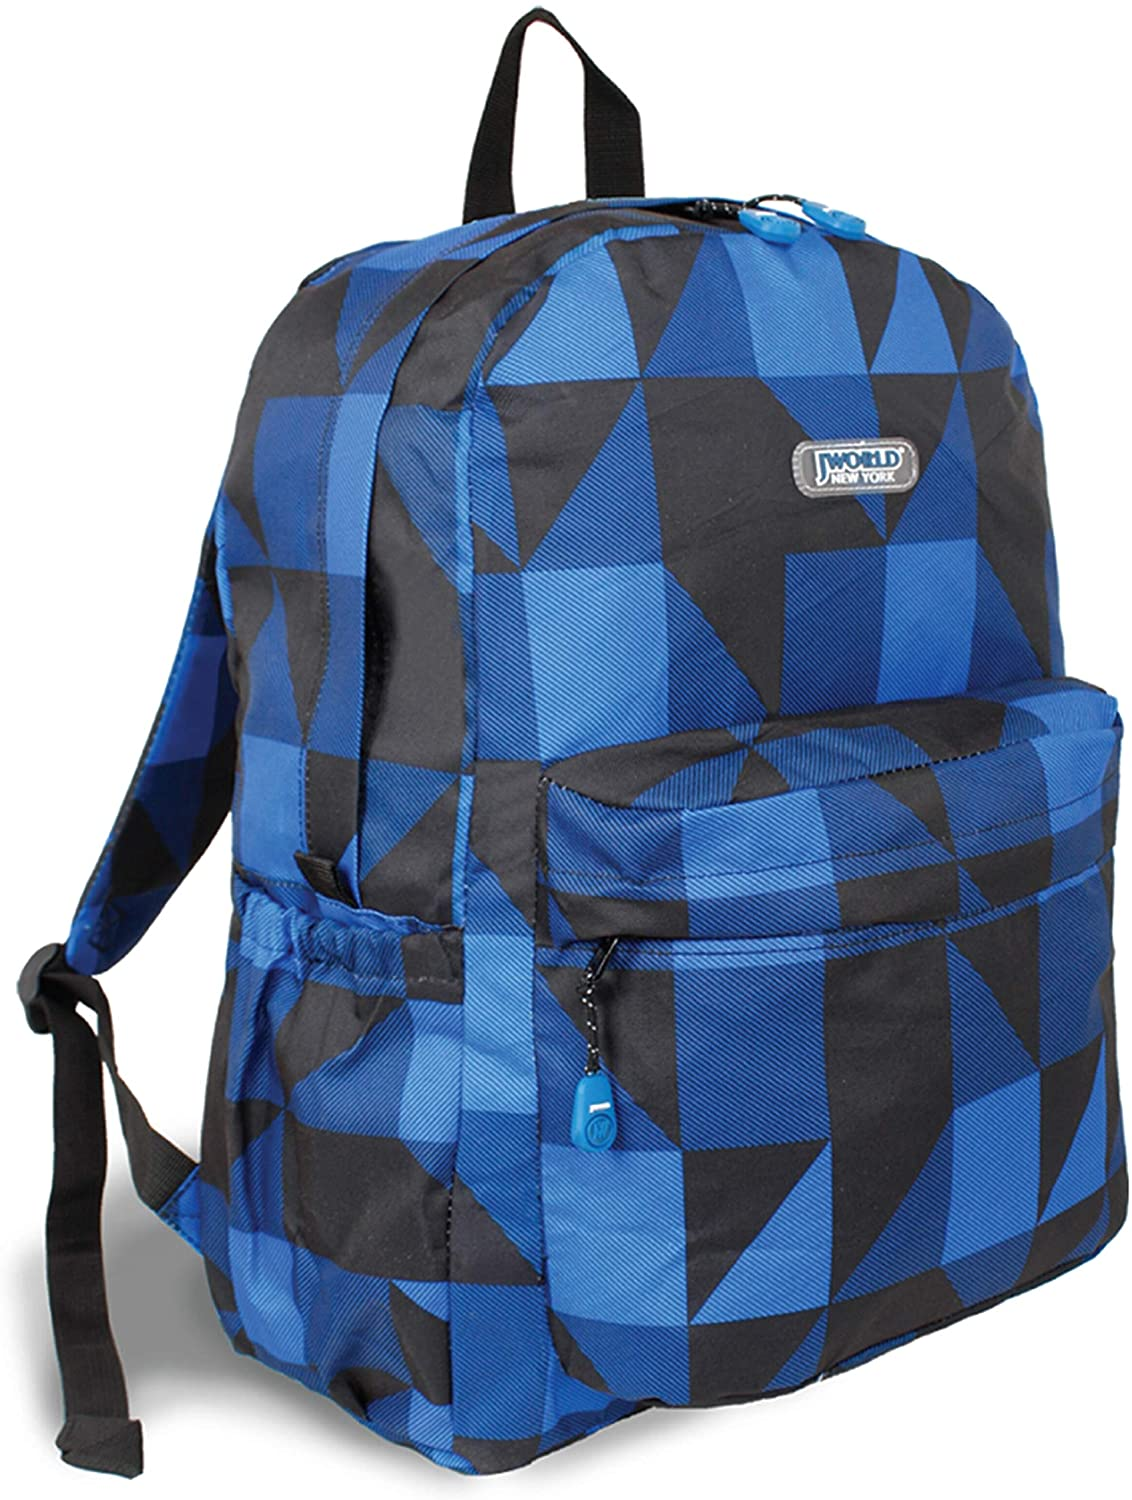 Block Navy OZ Expandable 17 inch Backpack Black Blue Plaid Polyester Laptop Compartment Adjustable Strap Lined Water Resistant